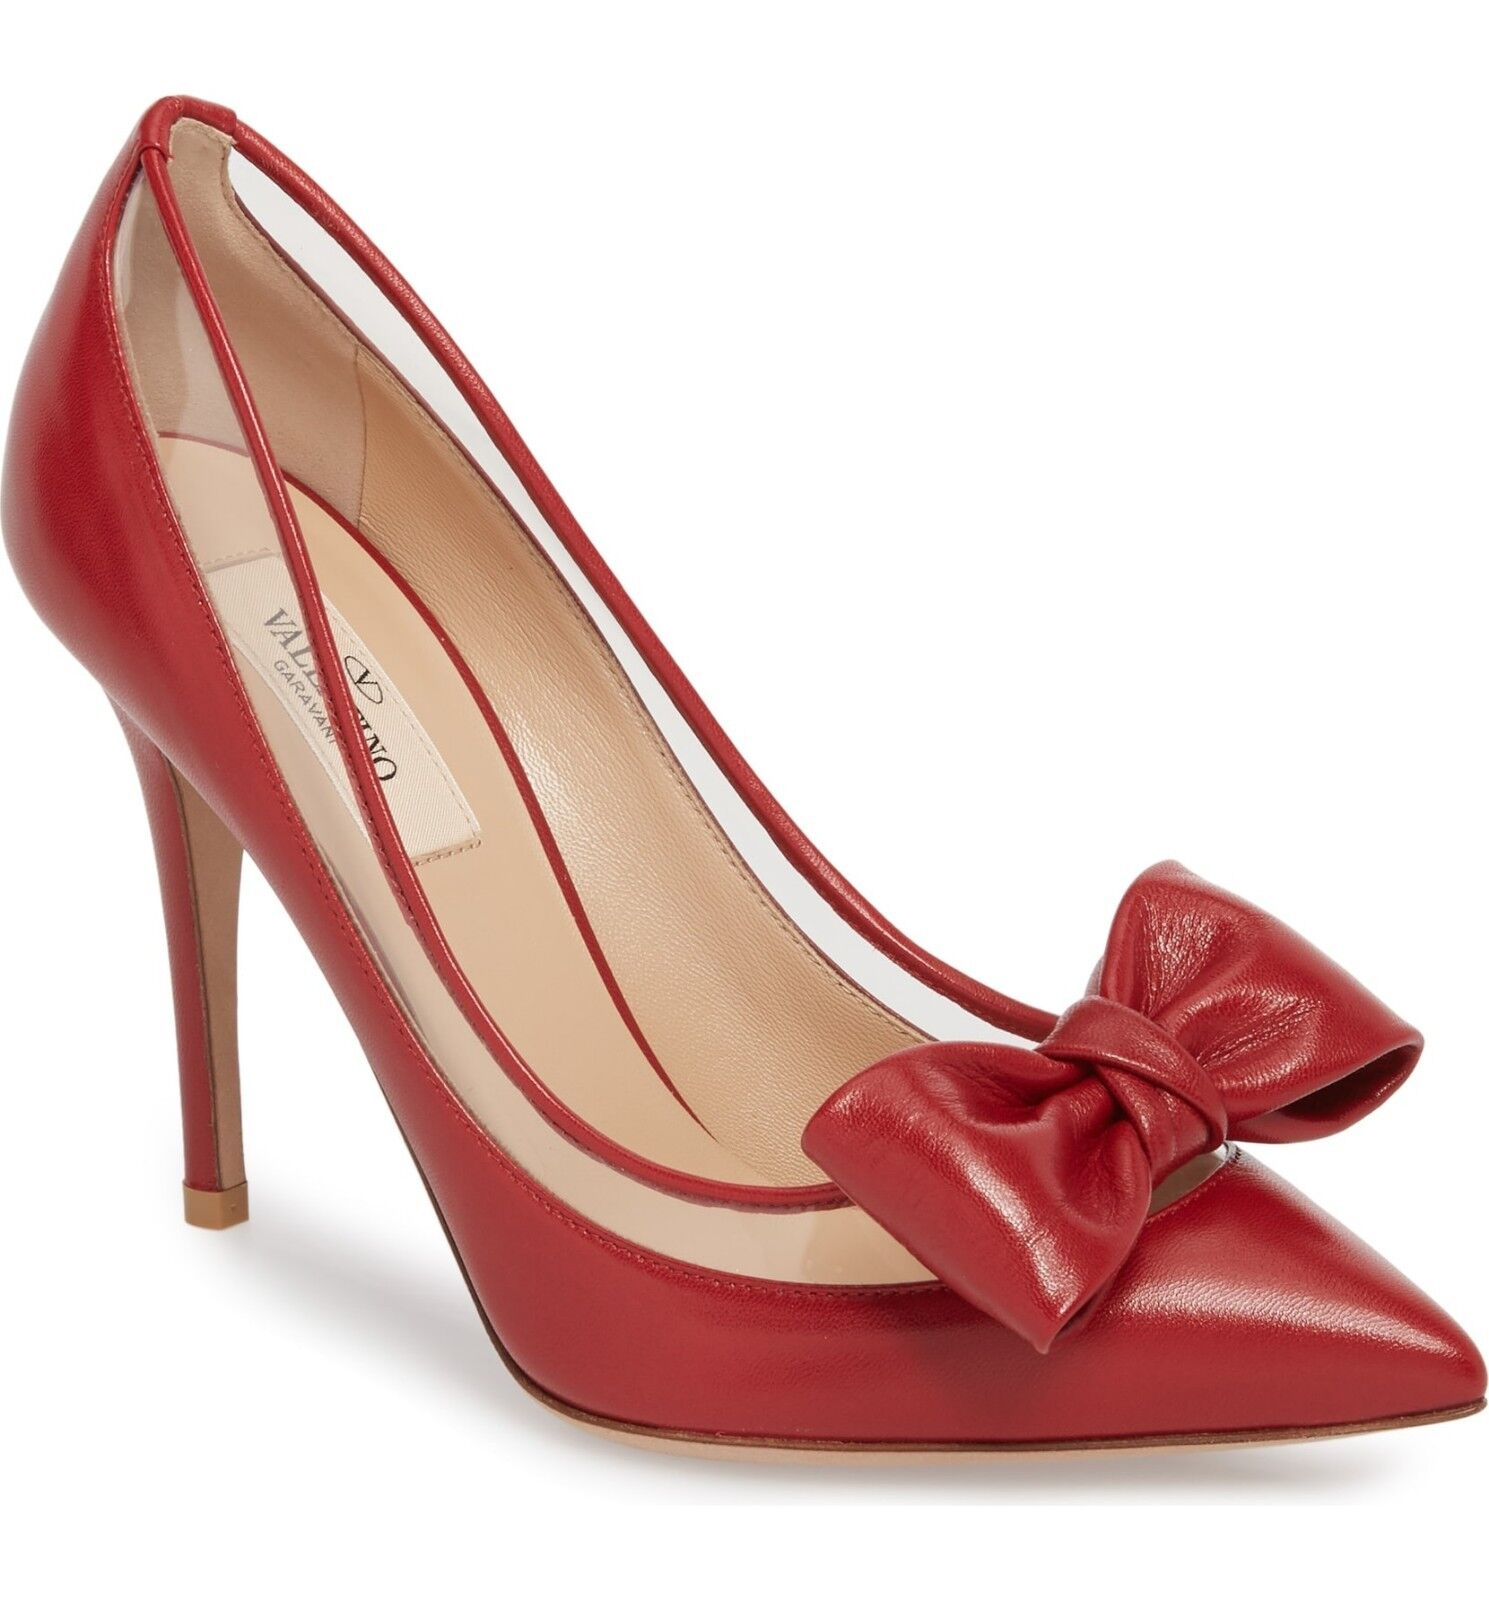 NIB  895+ VALENTINO Glassglow Bow Pointed Pump 100 Heel Heel Heel shoes Red Leather 39 - 8 407389